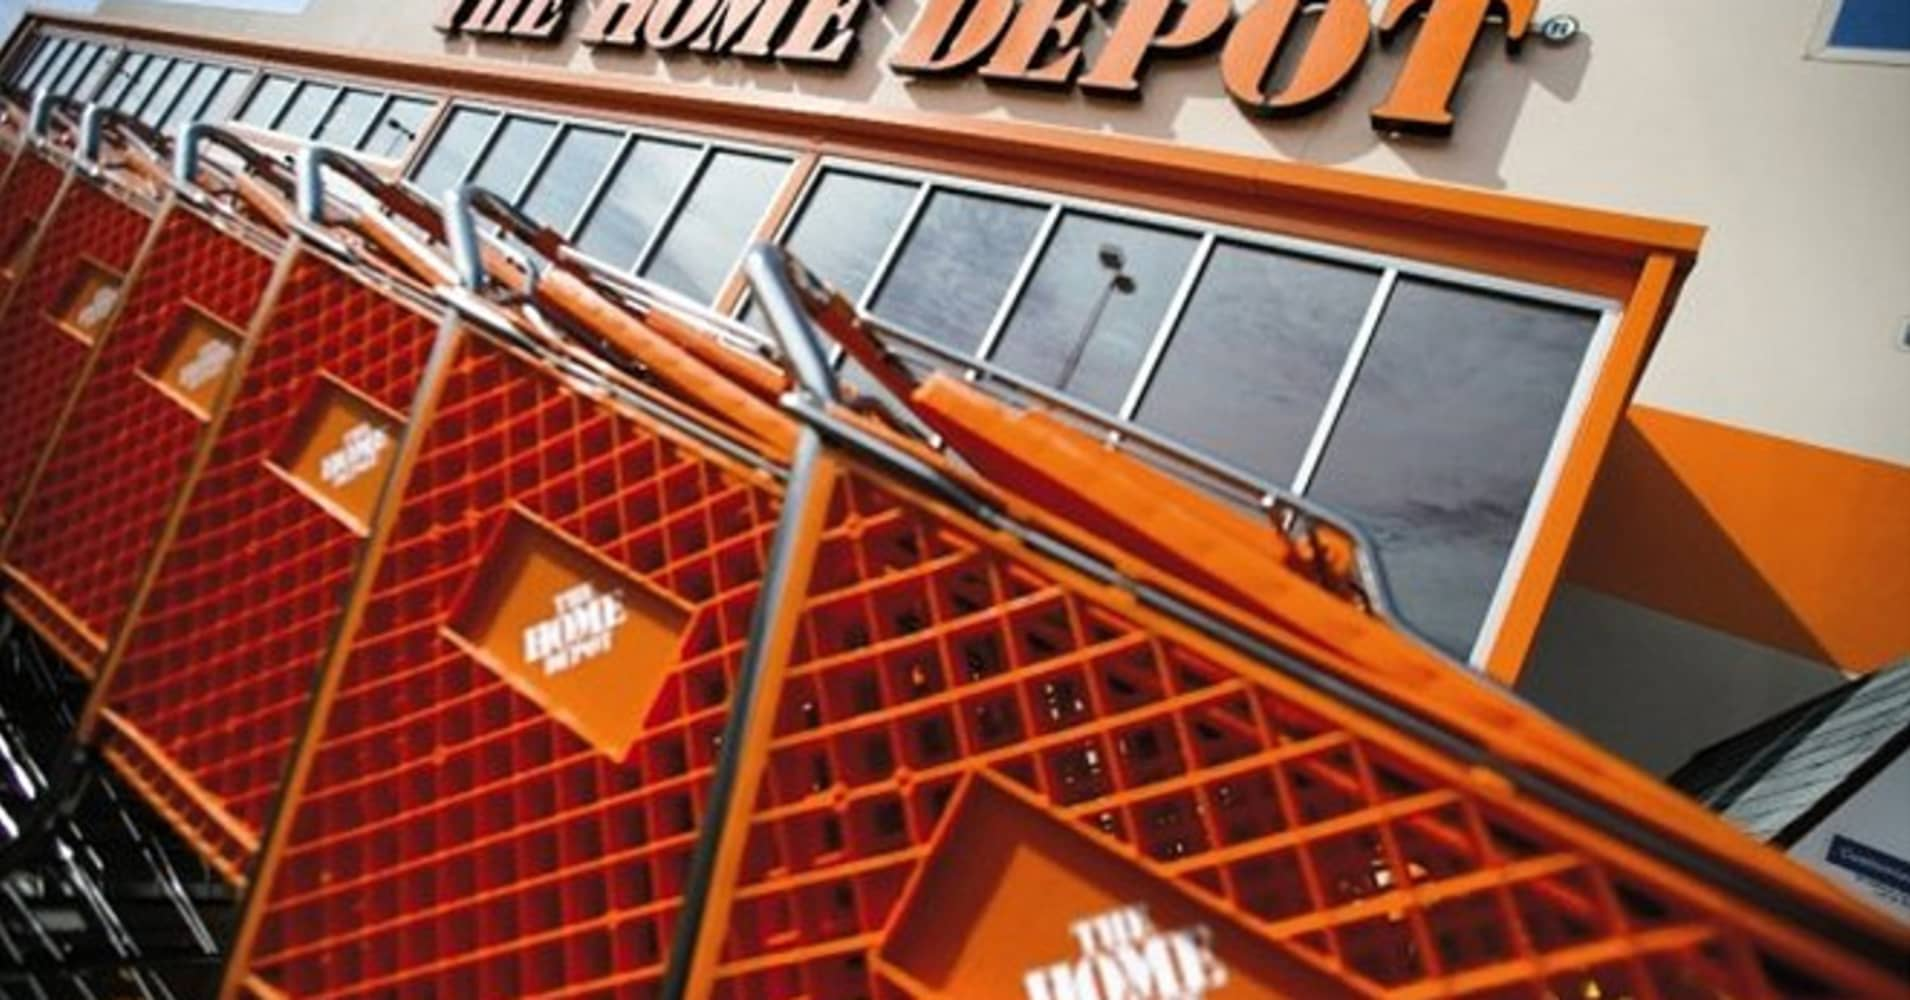 home depot posts earnings of 95 cents a share vs 90 cents estimate - Home Depot